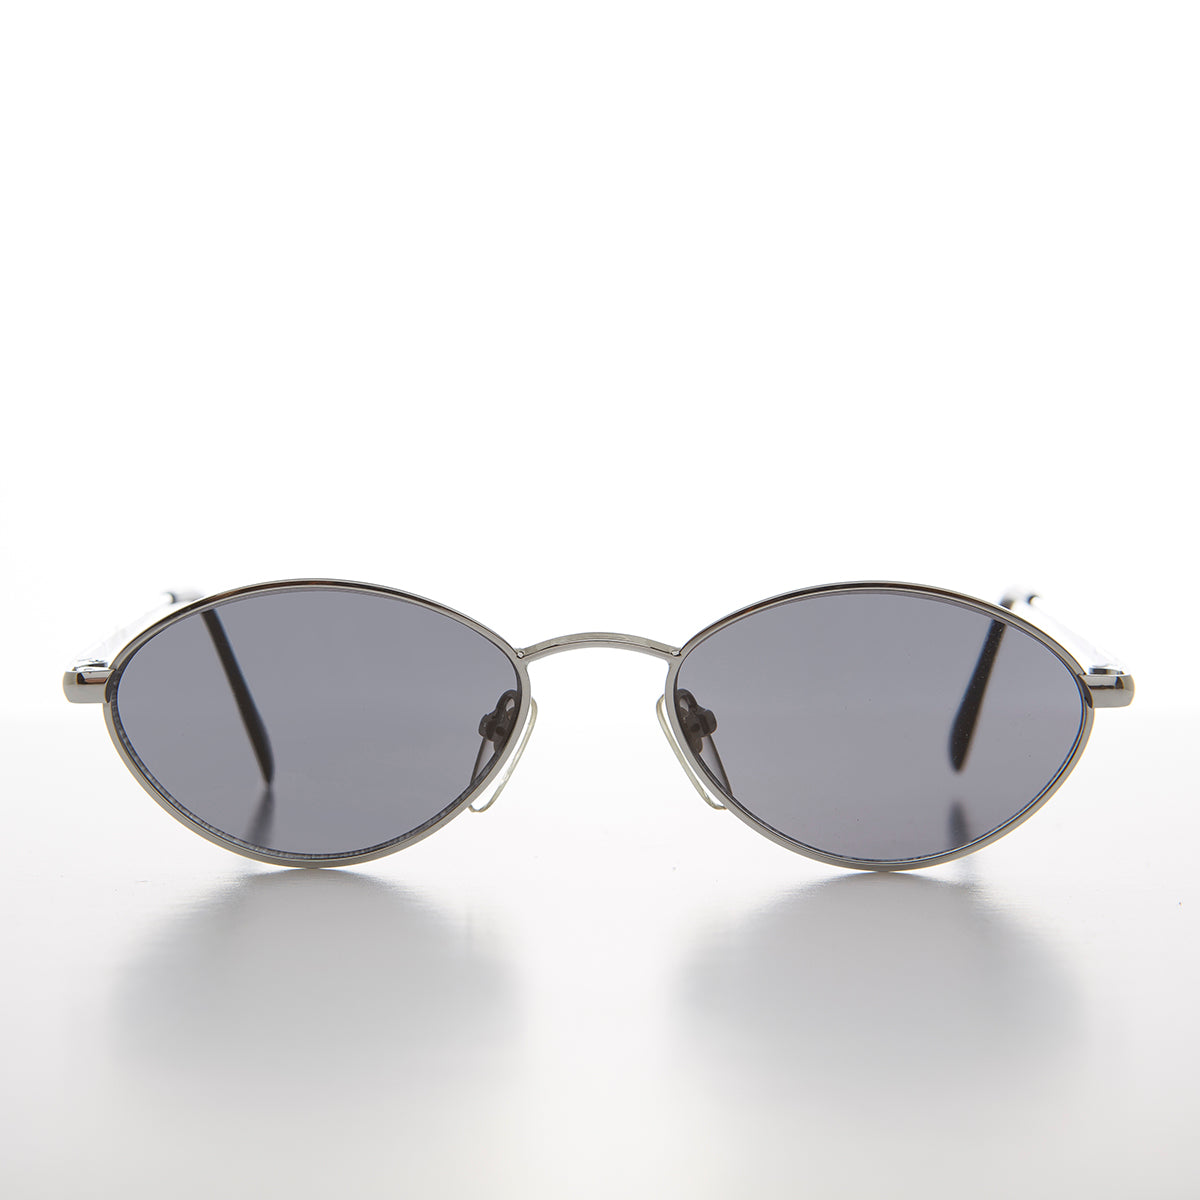 Unique Oval Metal Optical Quality 90s Vintage Sunglass